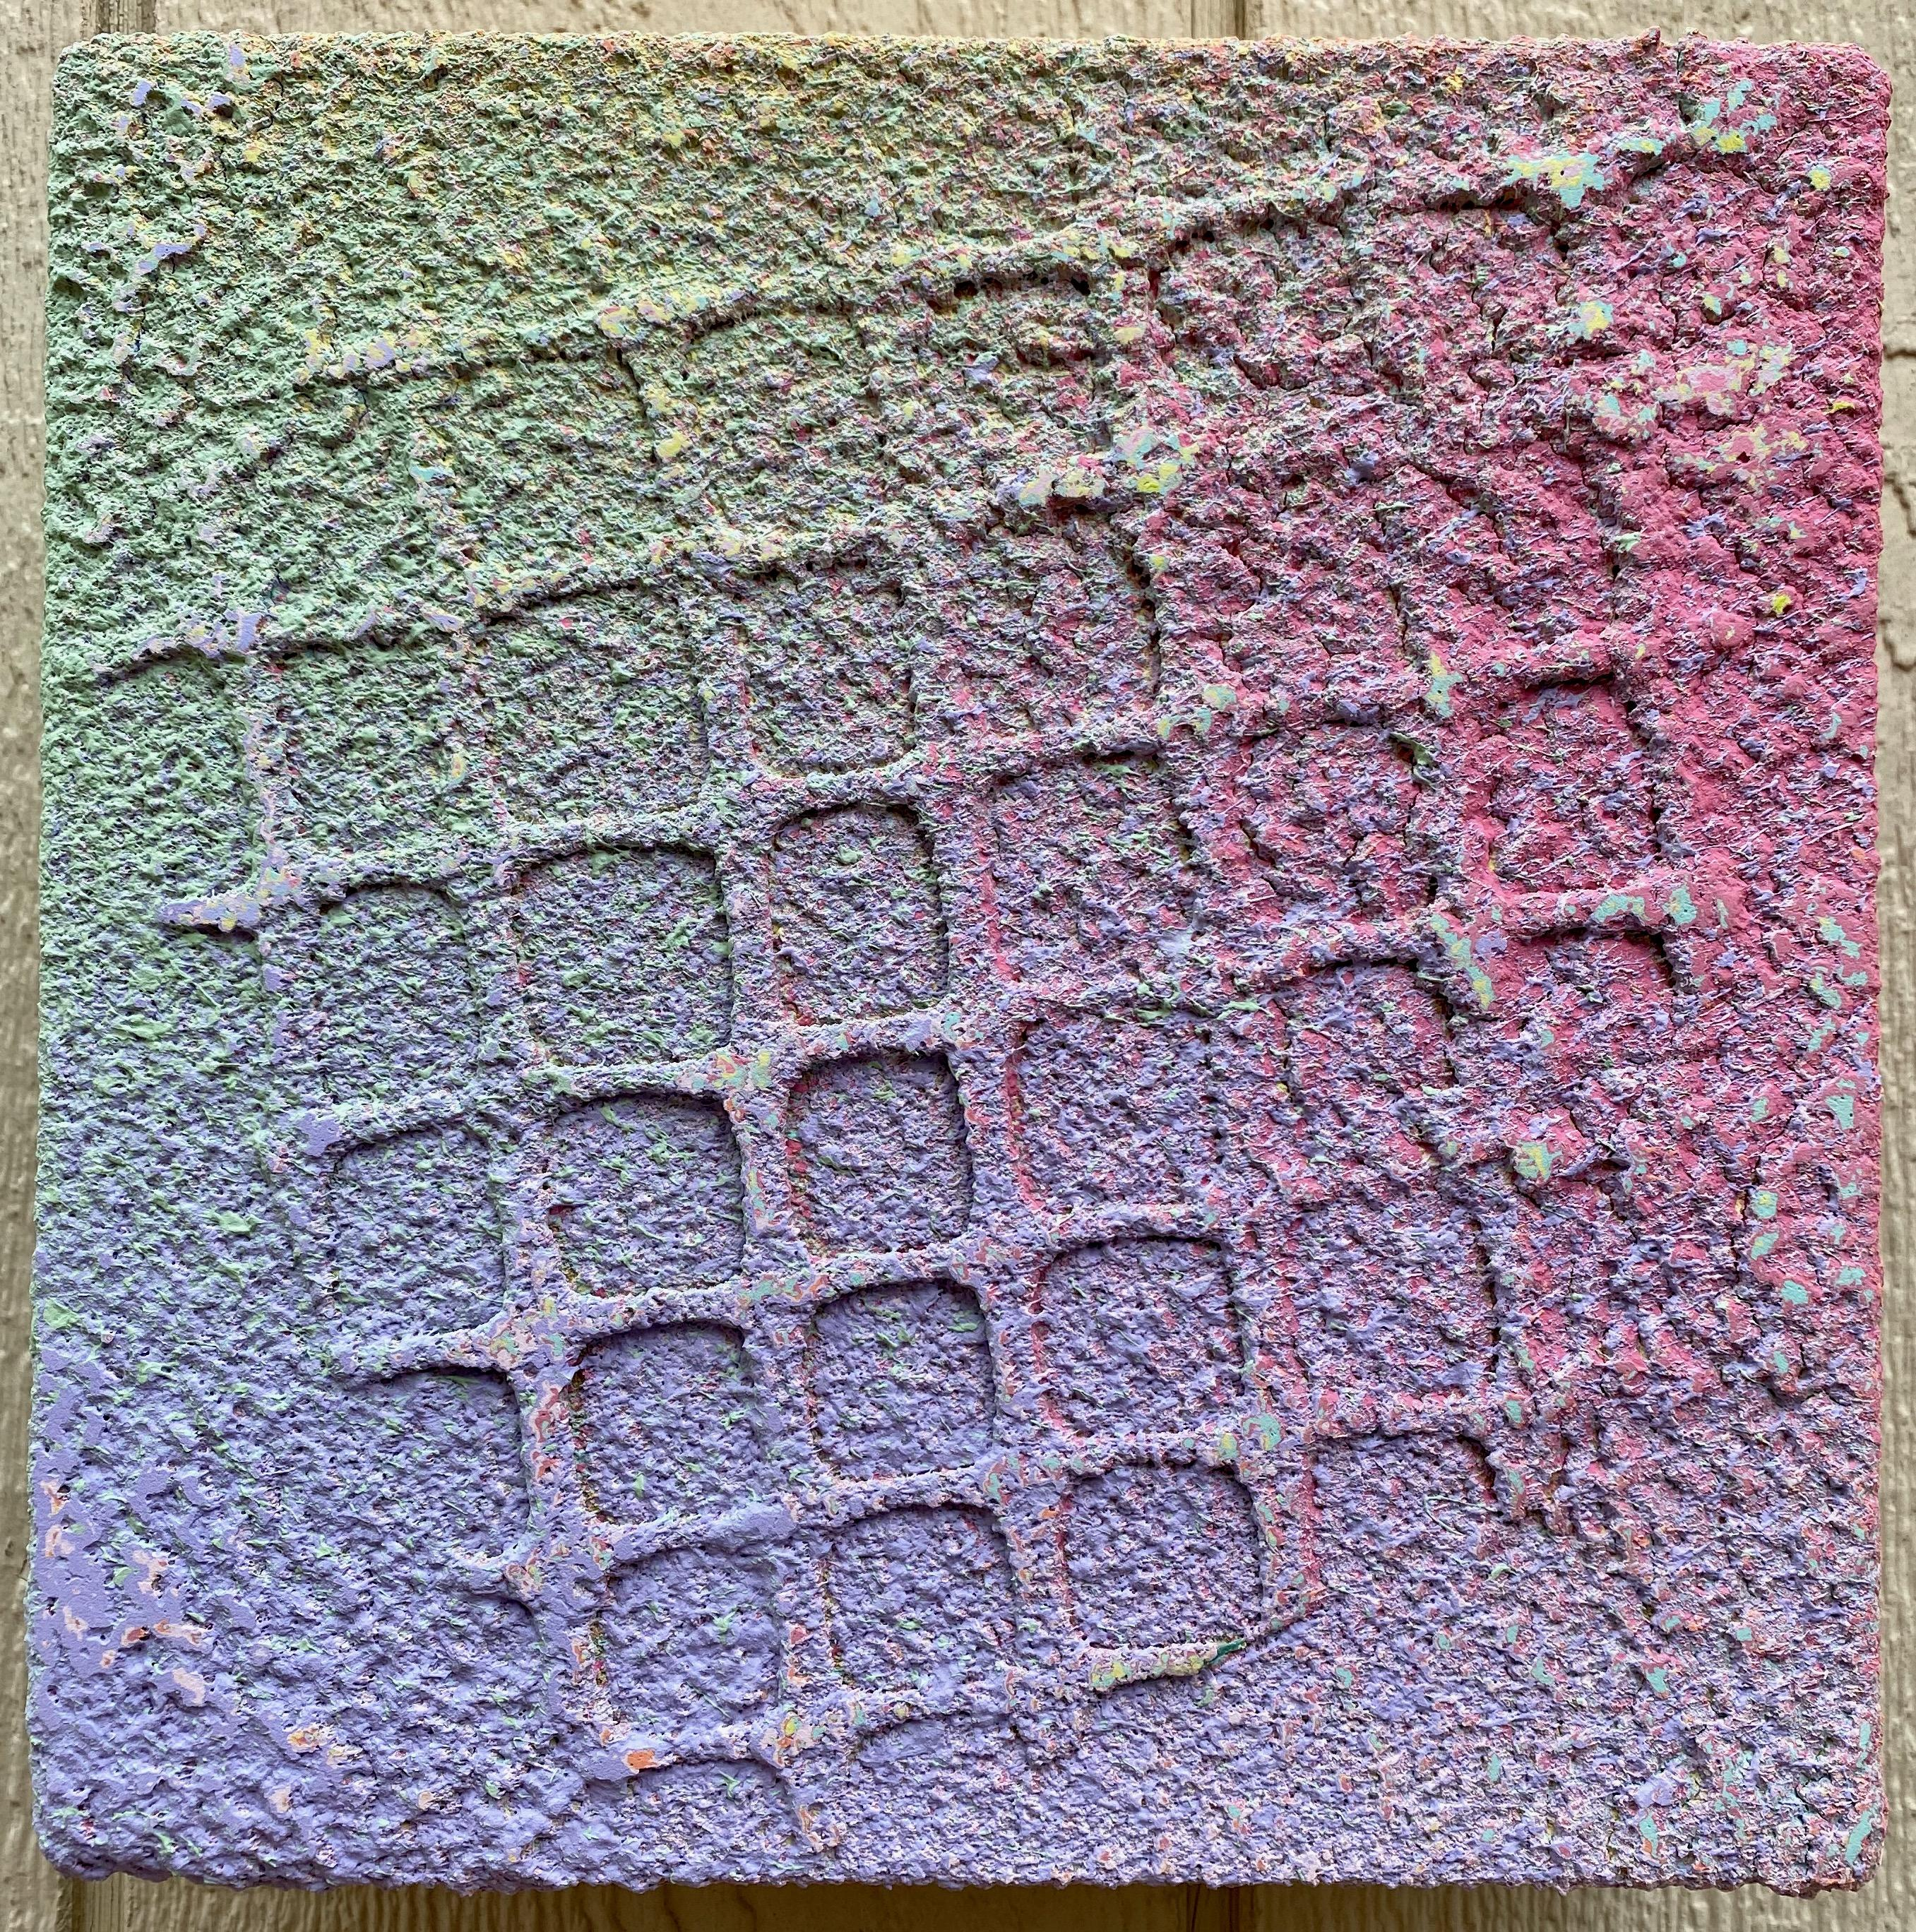 Pastel, small square abstract painting, mixed media by Joel Blenz